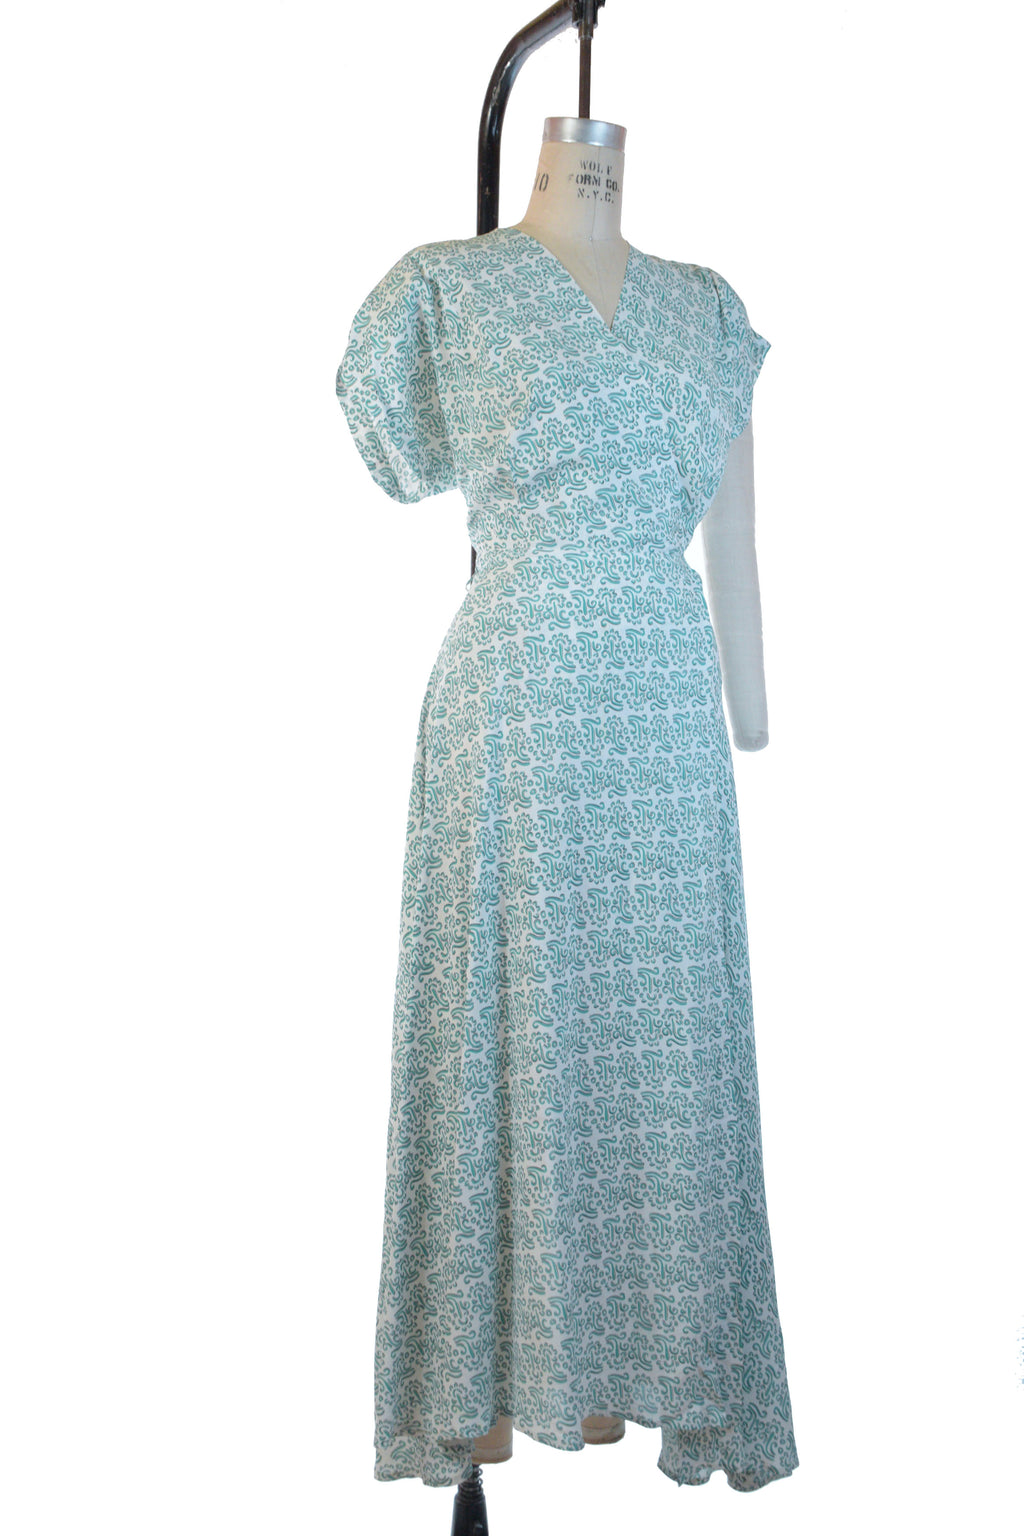 Luxurious 1940s Textron Cold Rayon Wrap Style Dressing Gown